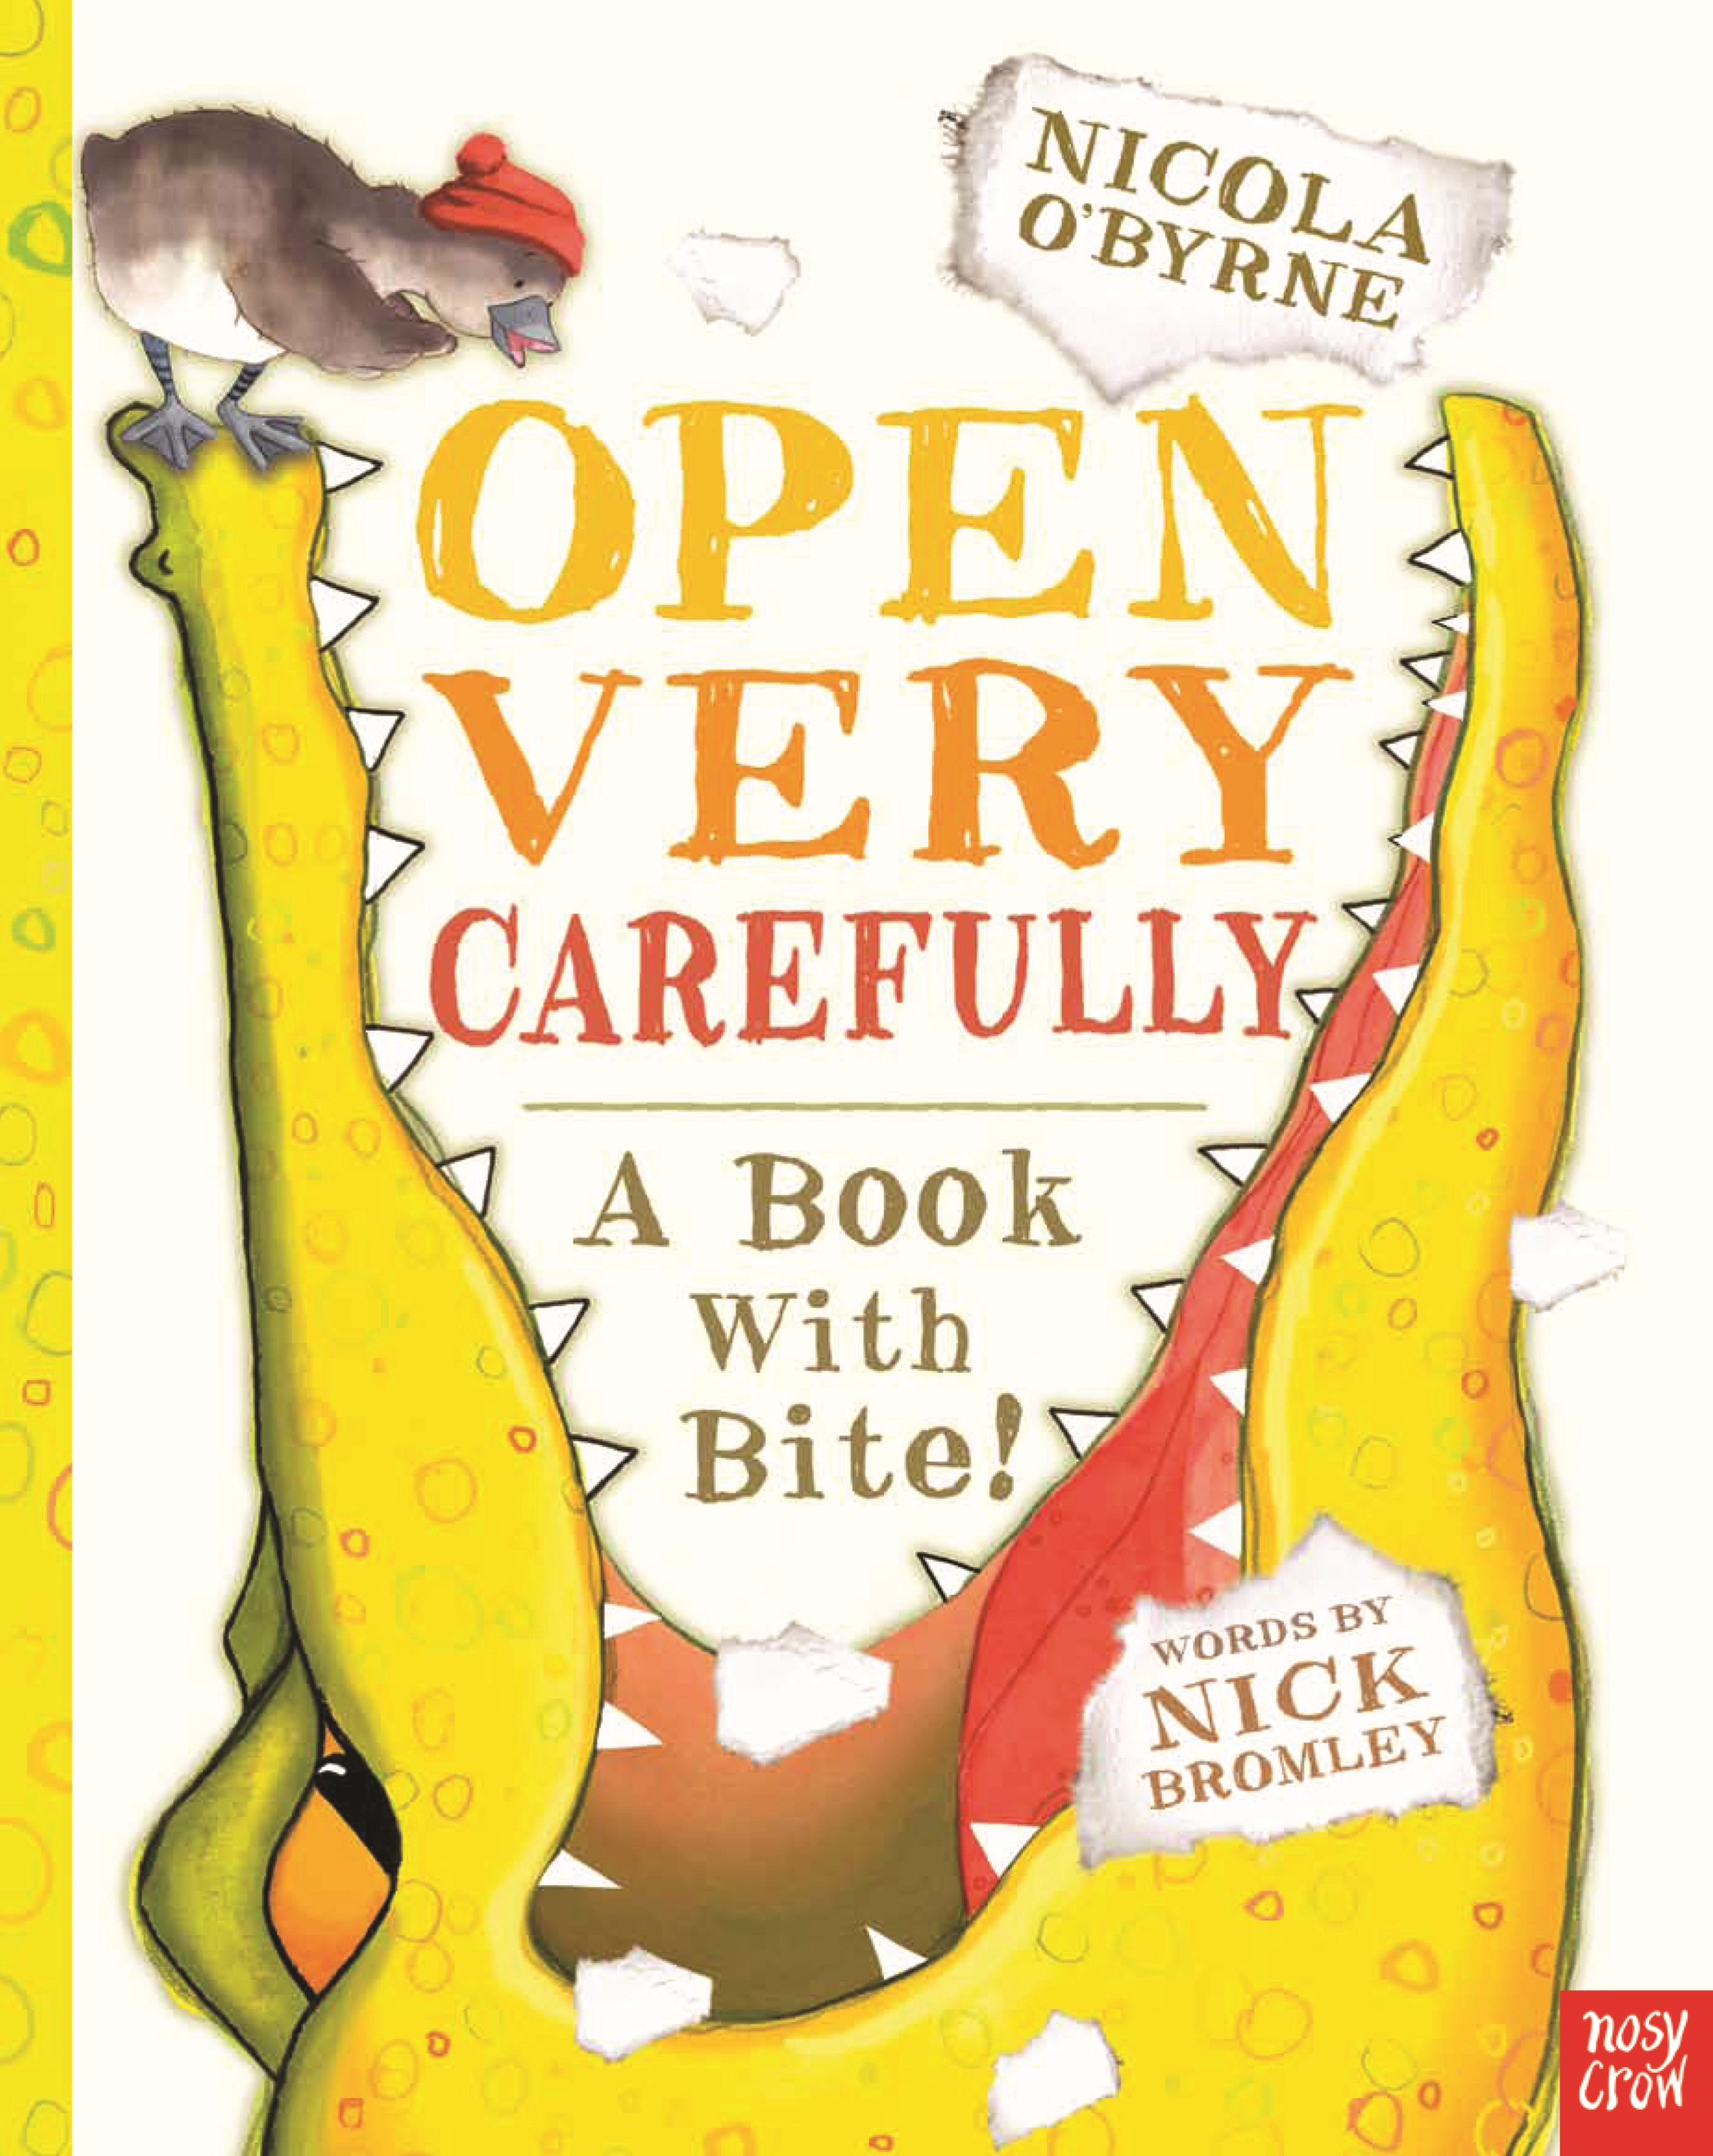 cocuklar-icin-kitap-onerileri-open-very-carefully-by-nick-bromley-3-yas-ve-uzeri